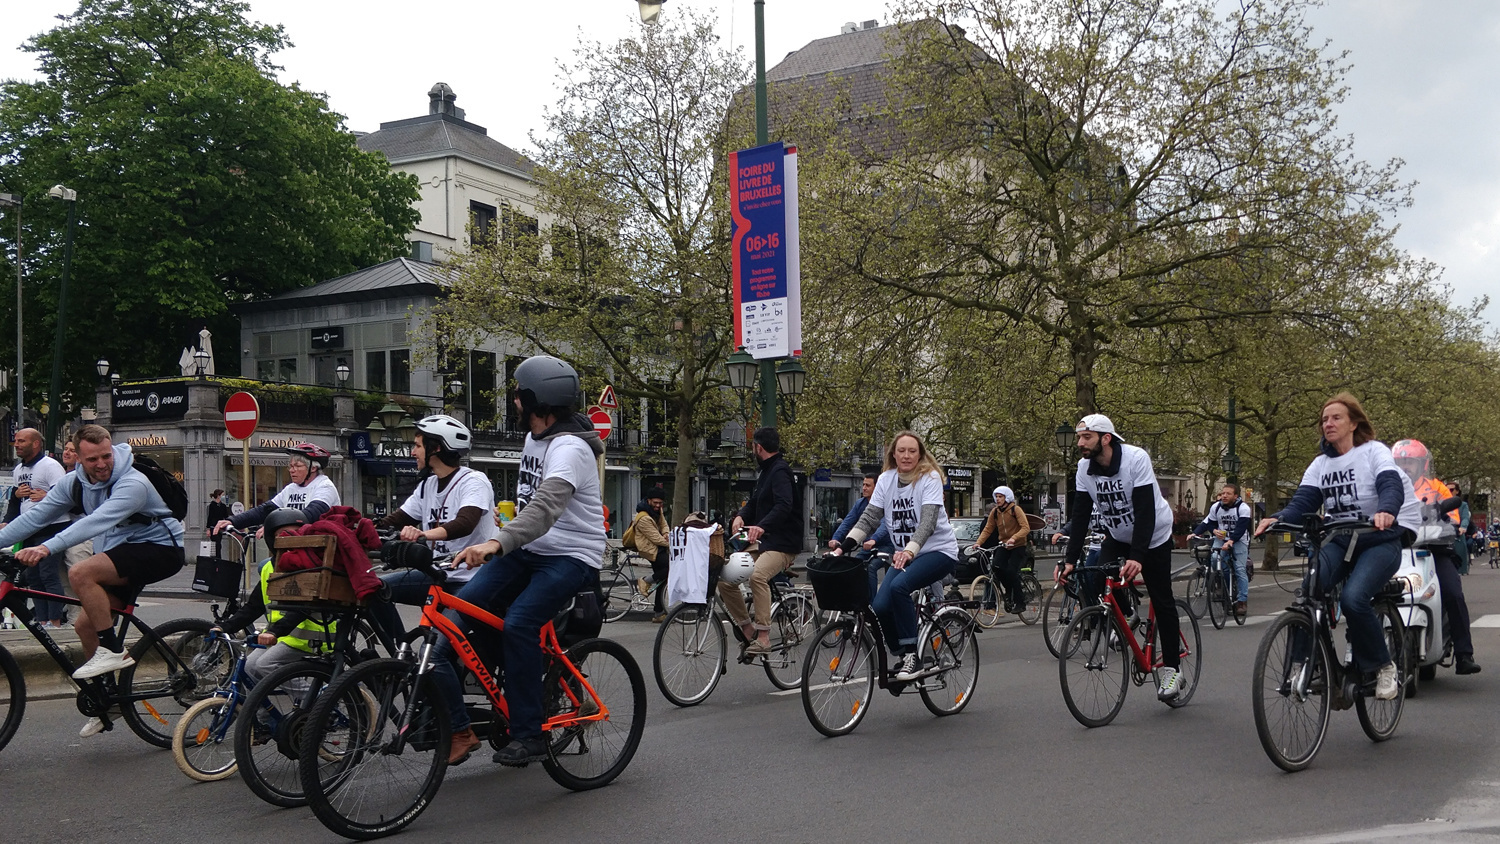 Cycle for freedom, le 1er mai 2021 à Bruxelles, Belga Images